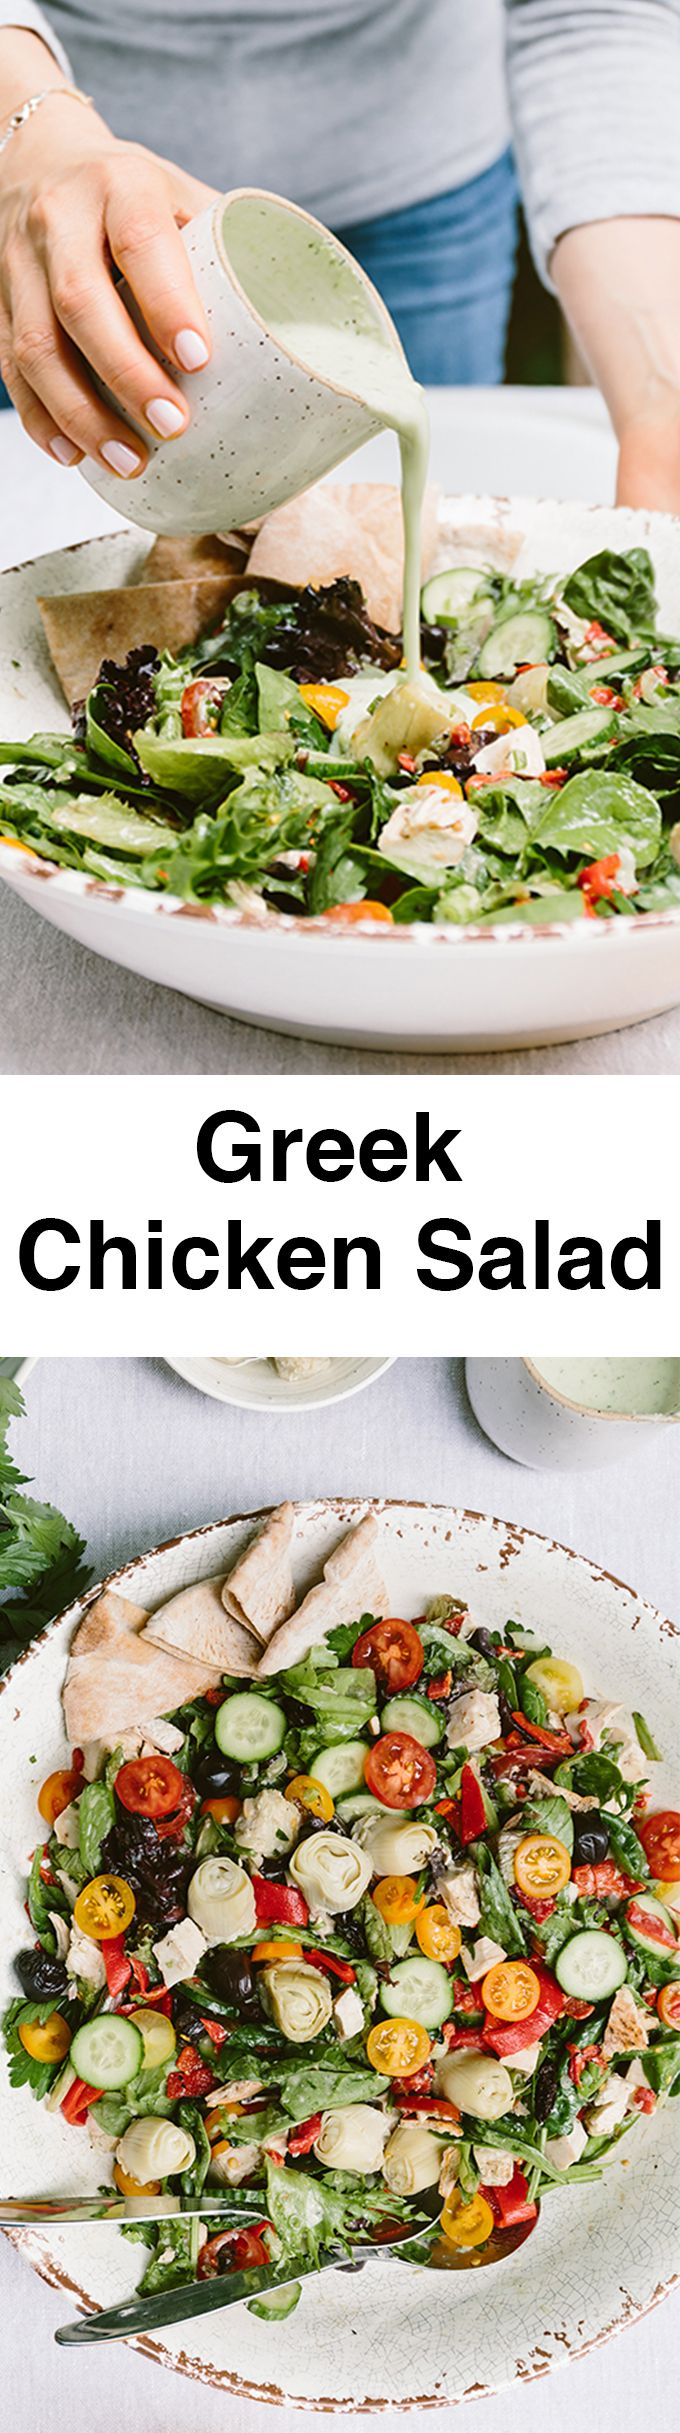 Greek Yogurt Chicken Salad is a refreshing, satisfying and kid friendly meal for summer weeknights. It's super easy to make and my carnivore family devours the whole salad each time I make it. #sponsored